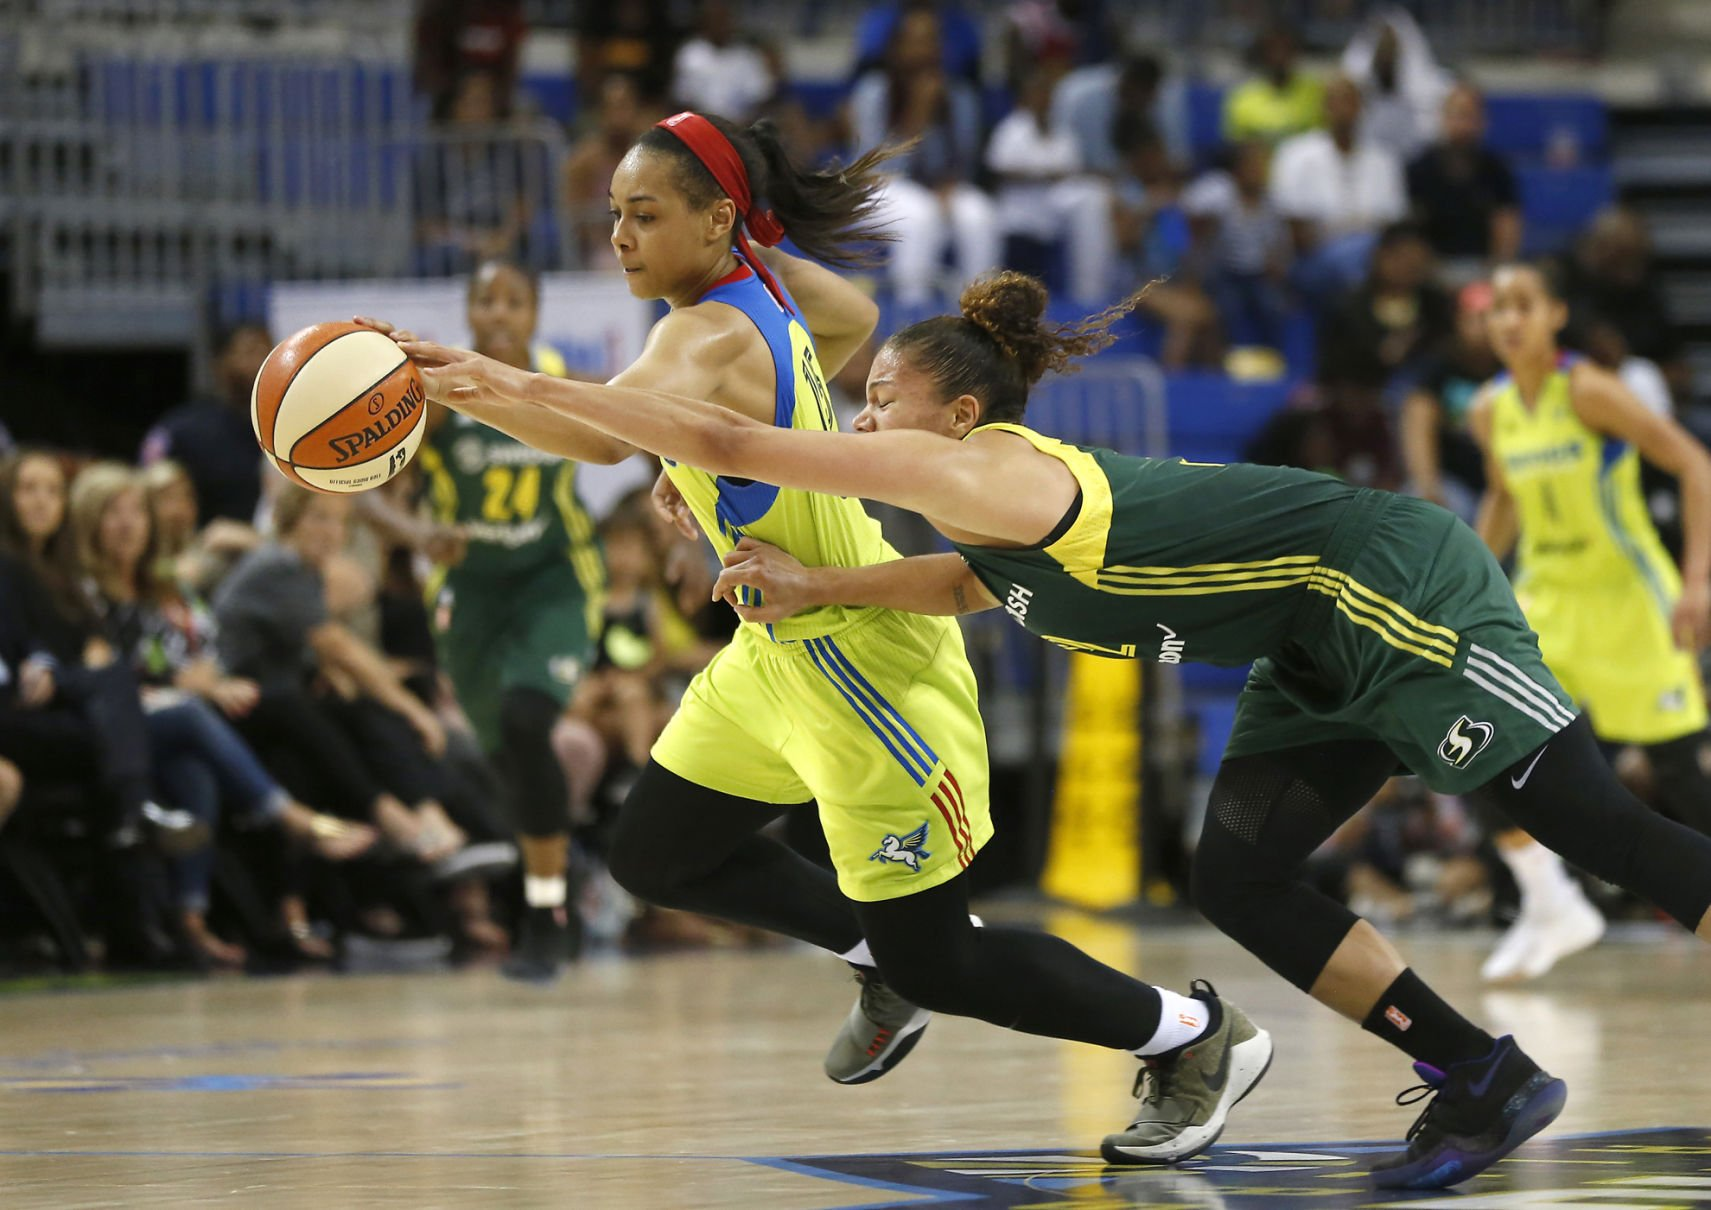 Dallas Wings guard Allisha Gray named WNBA Rookie of the Year